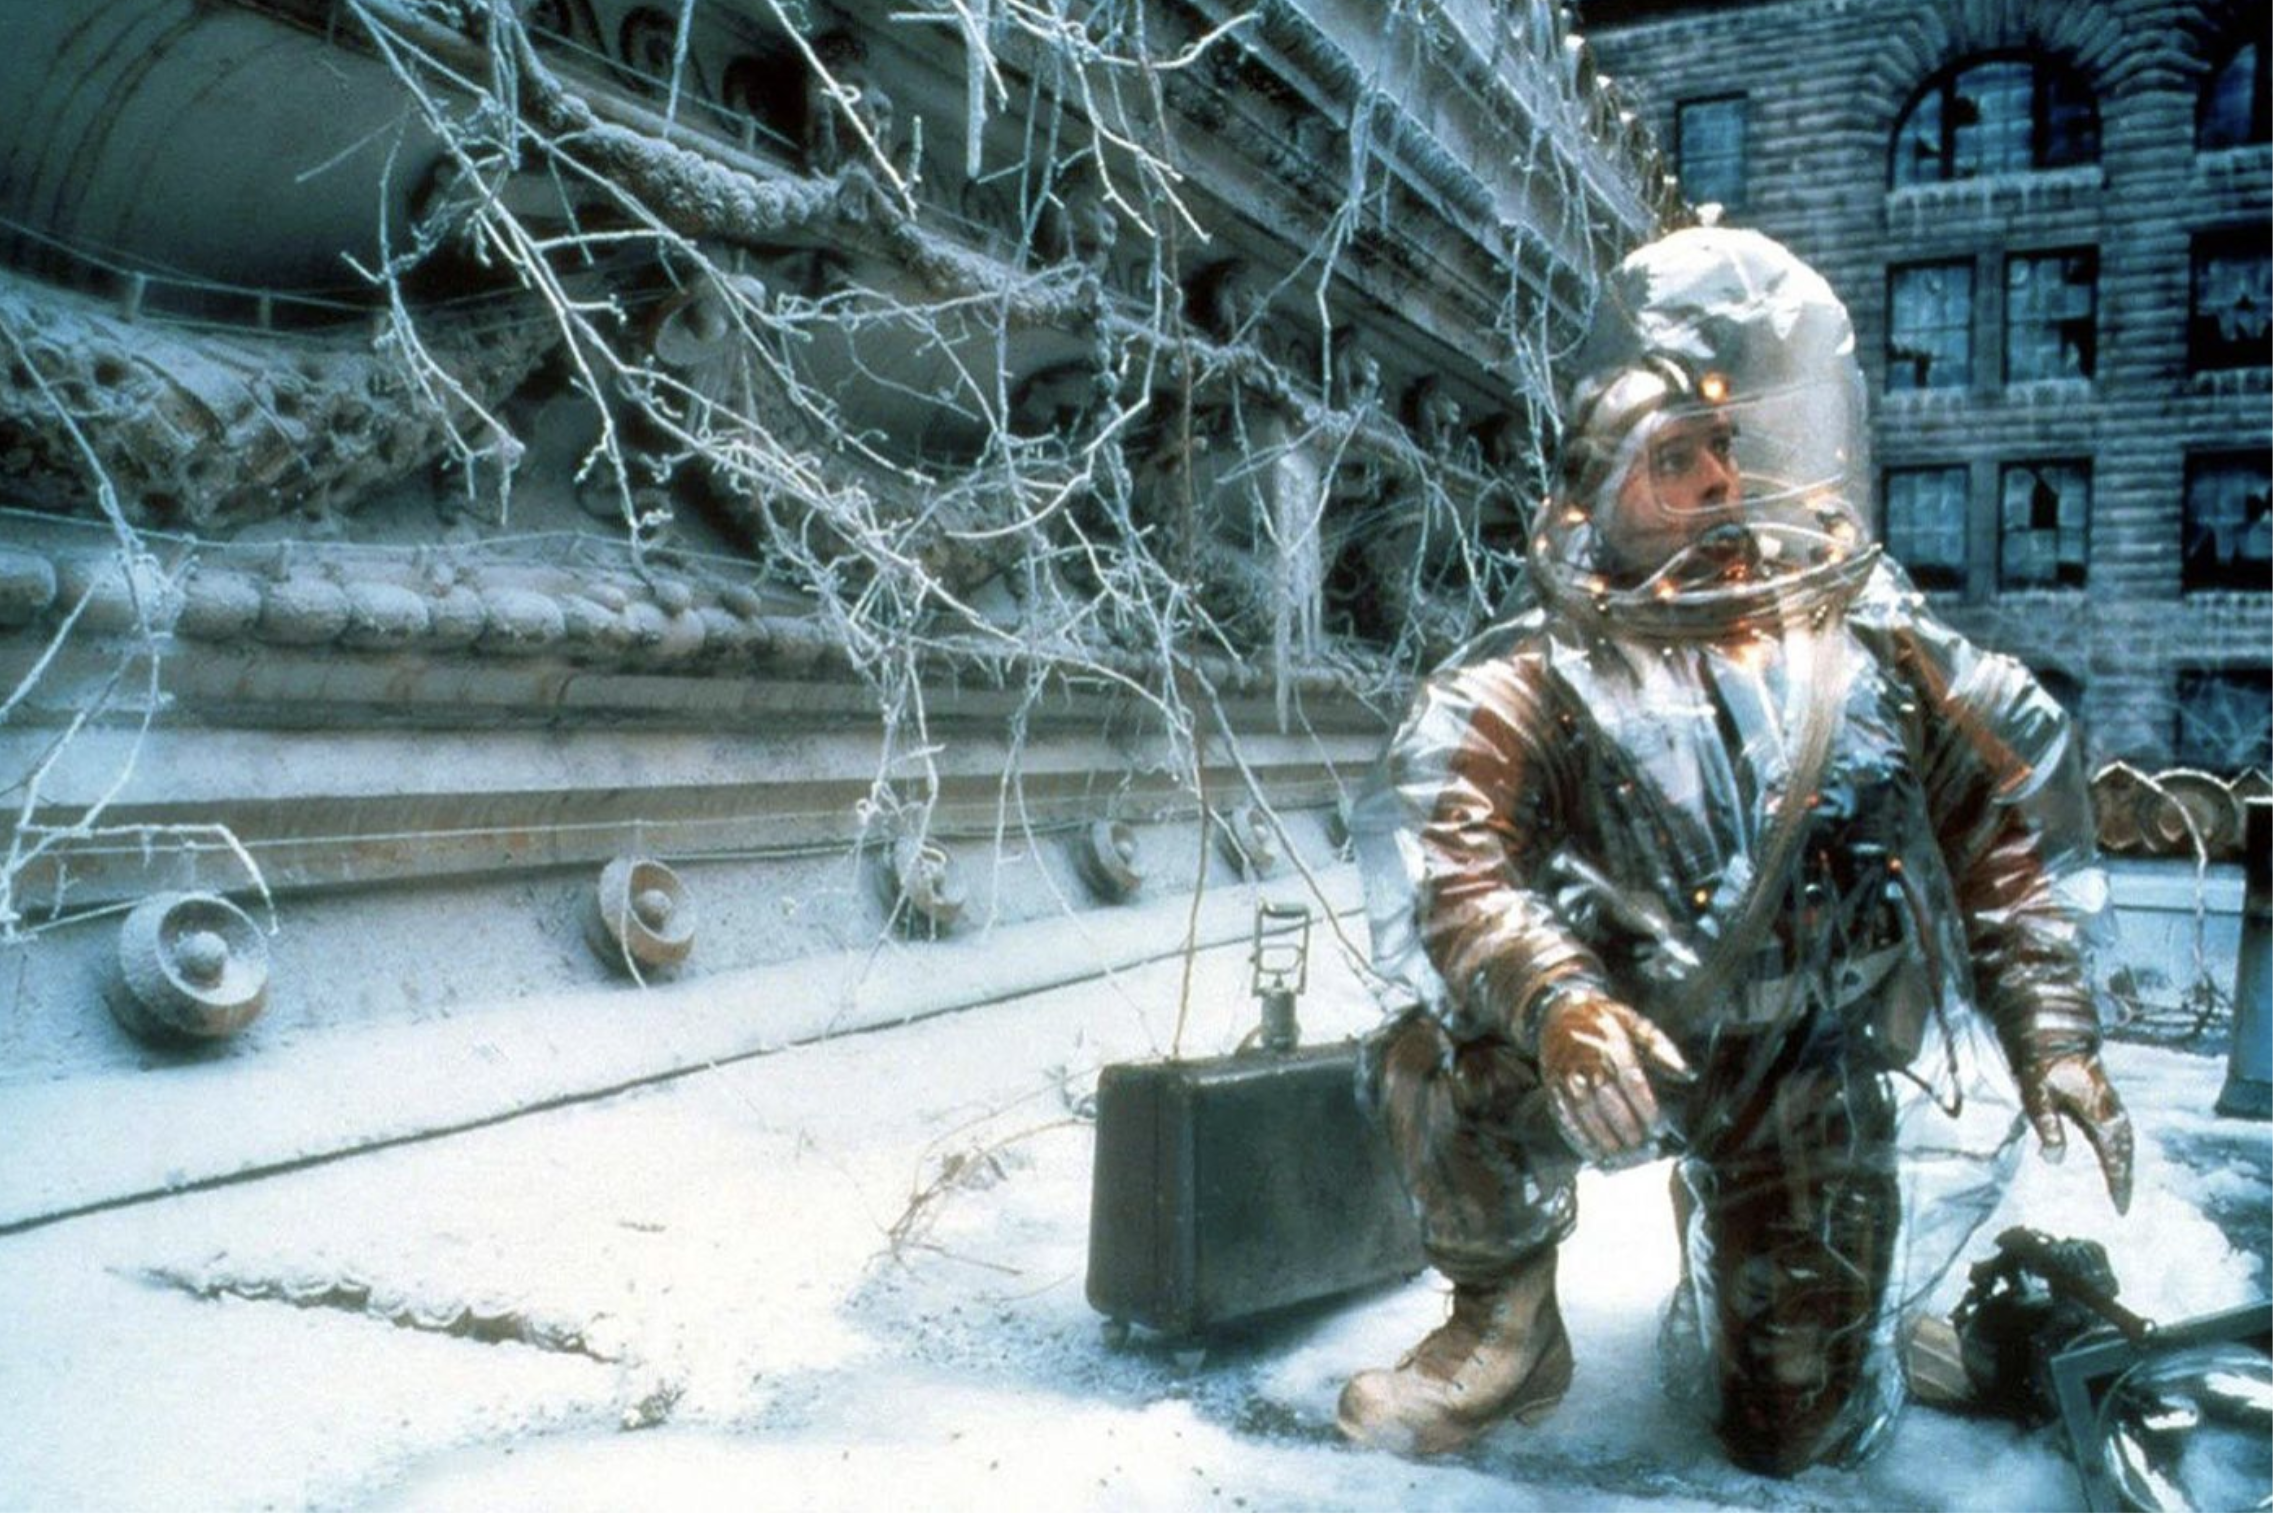 'We Told You So': Revisiting the Bleak, Pandemic-Filled World of 12 Monkeys, 25 Years Later